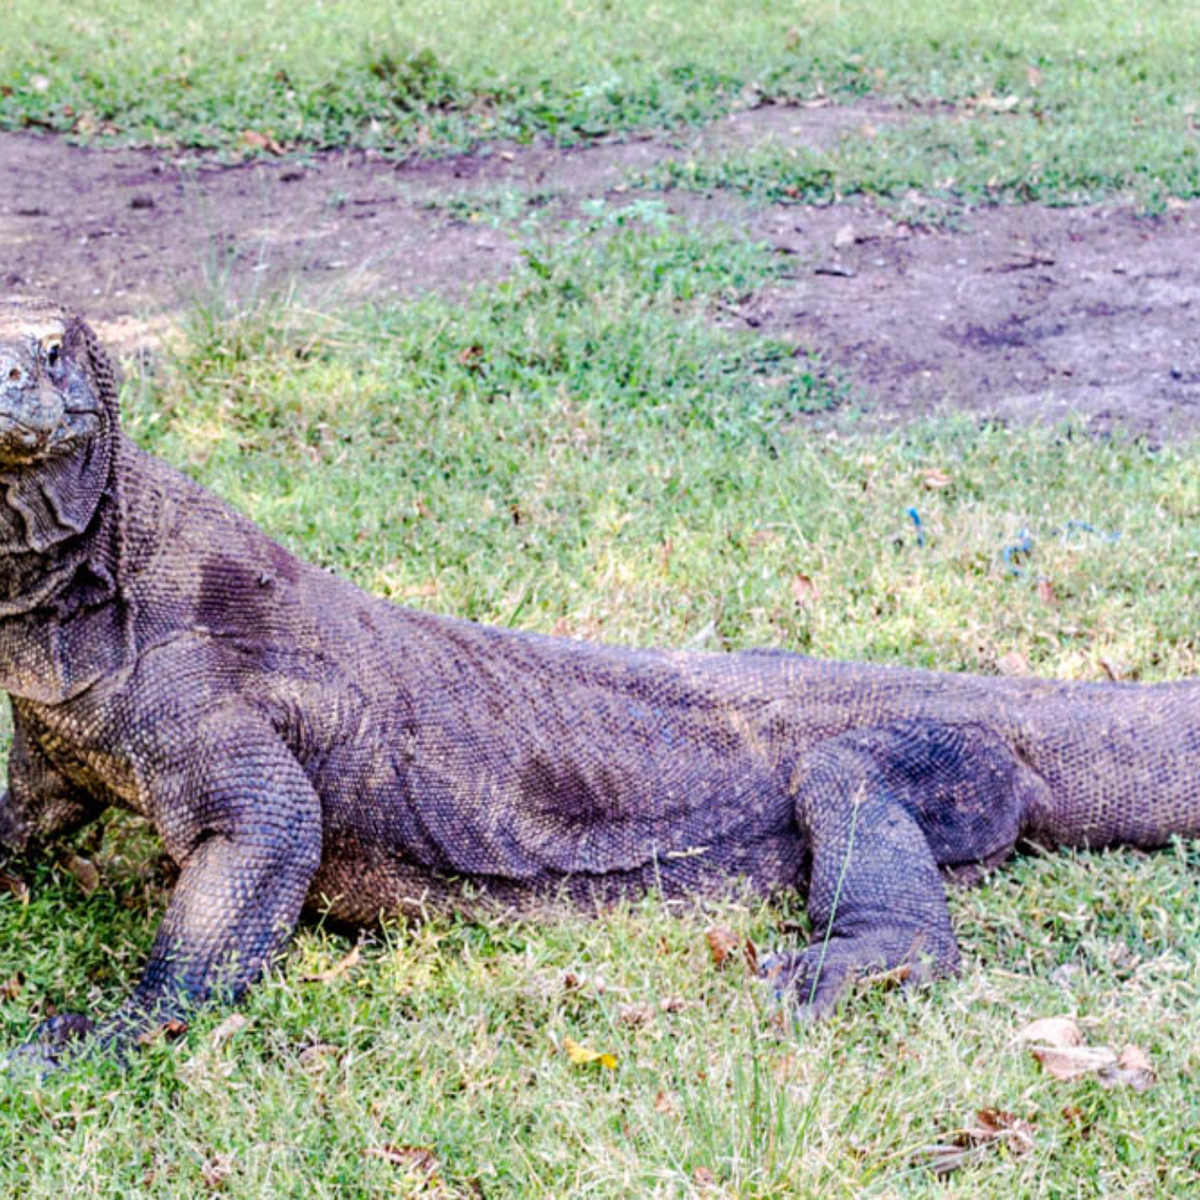 Visit the Komodo Islands without an expensive tour: How to See the Komodo Dragons In Real Life!